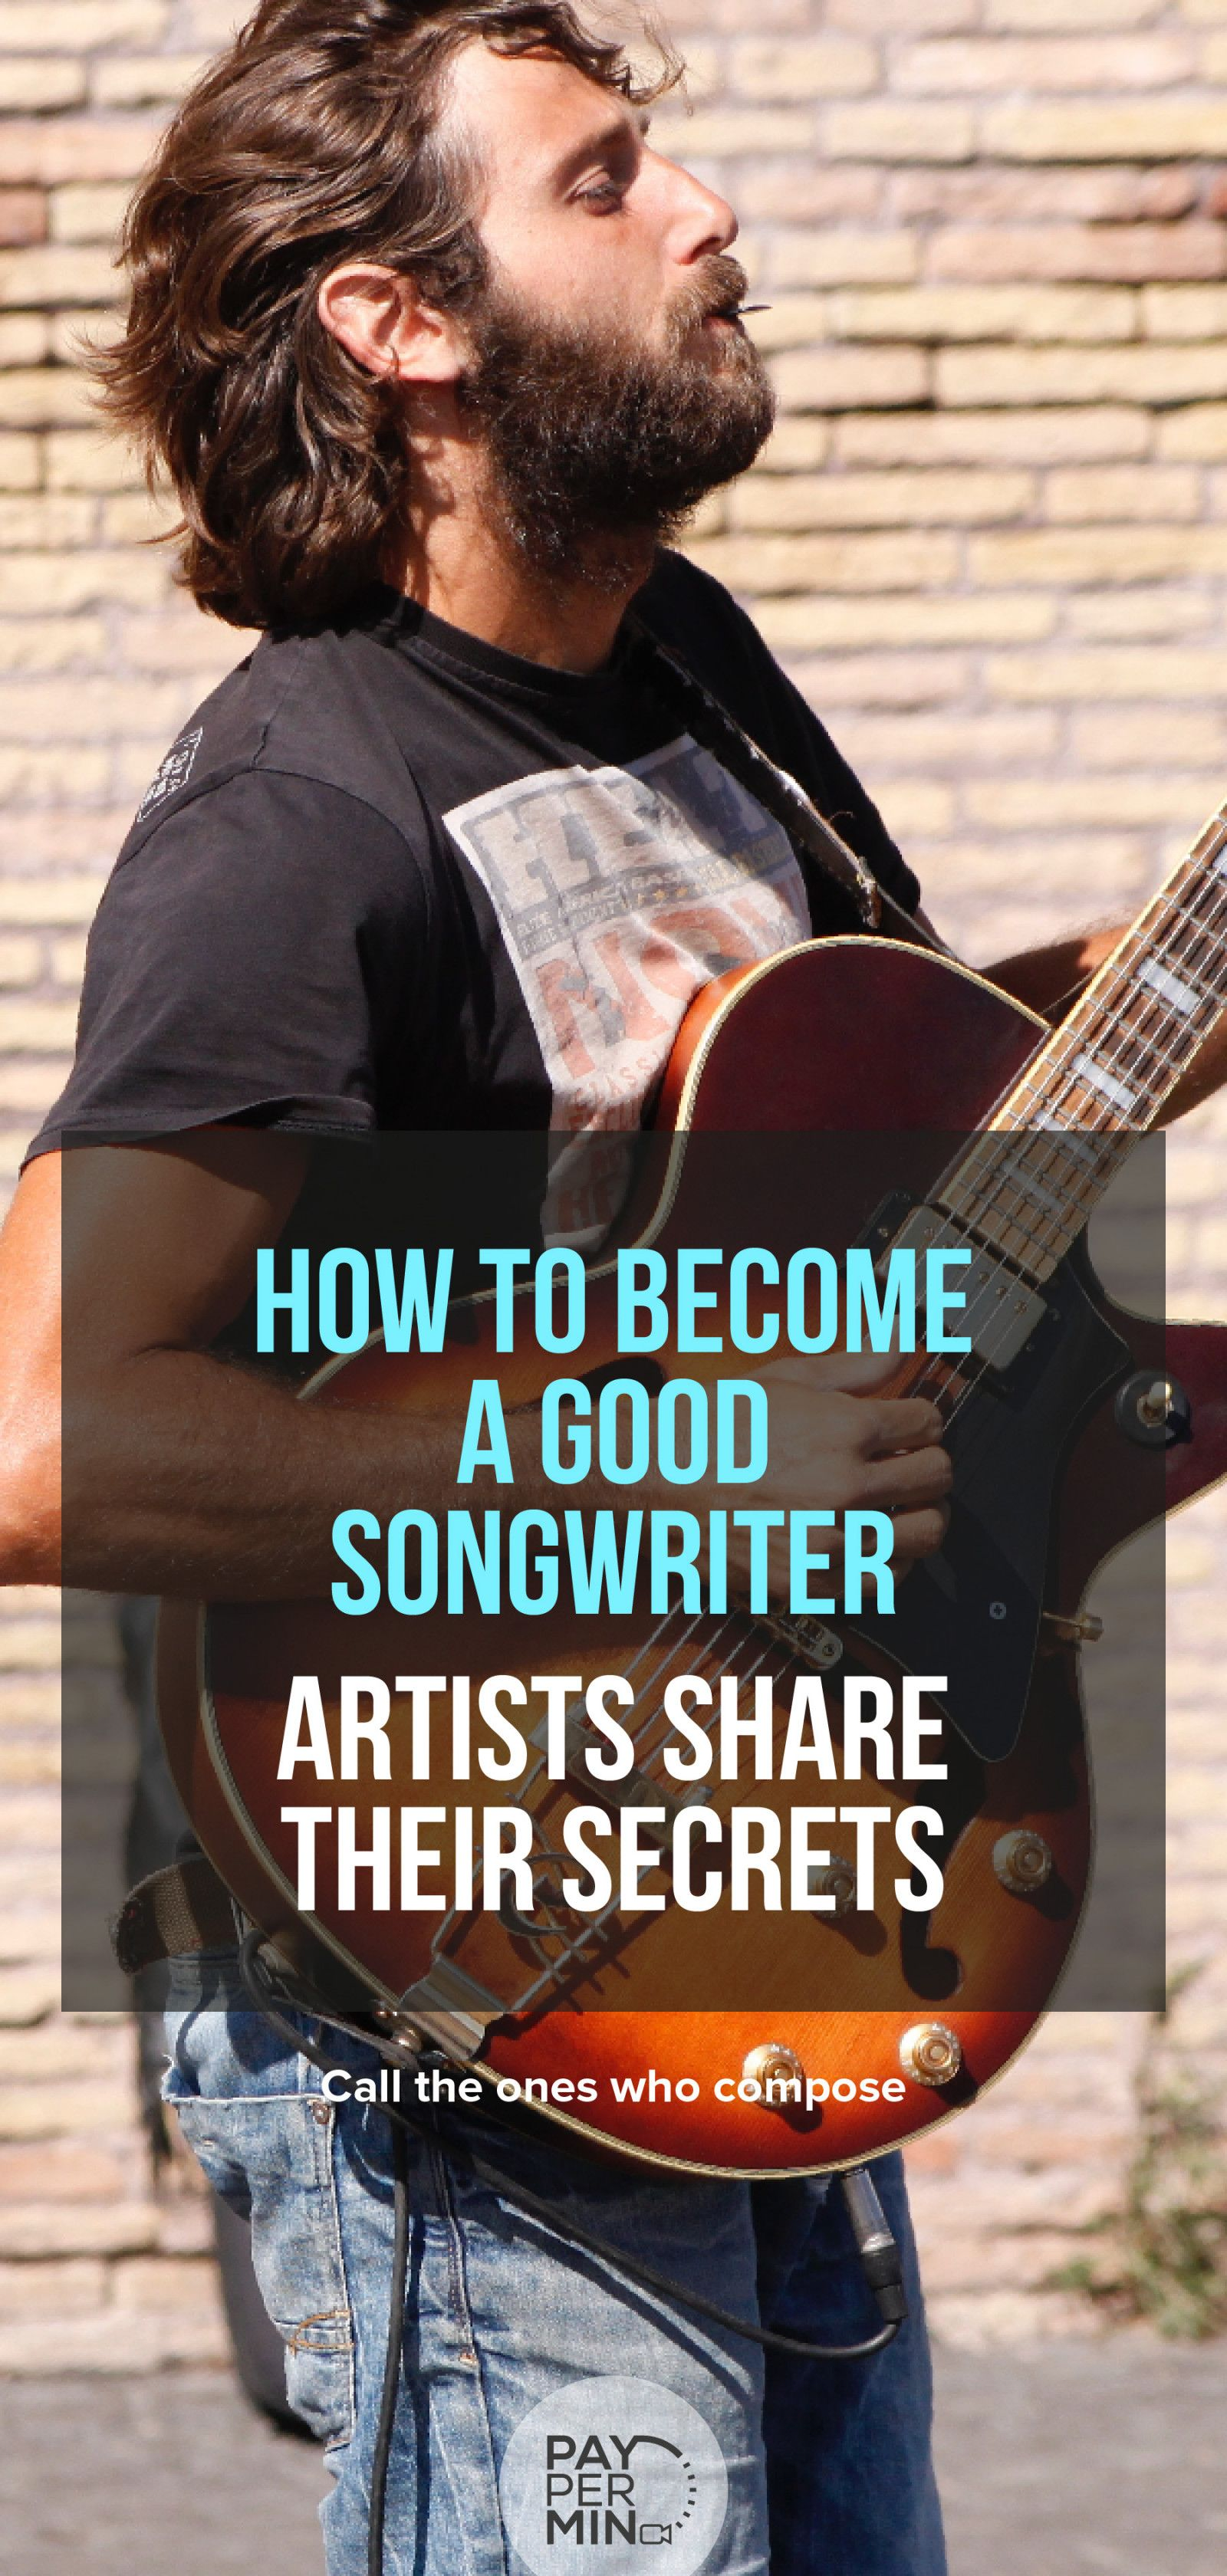 5027159d2a1a8d41f0905e4d4fe2d60c - How To Get In The Music Industry As A Songwriter